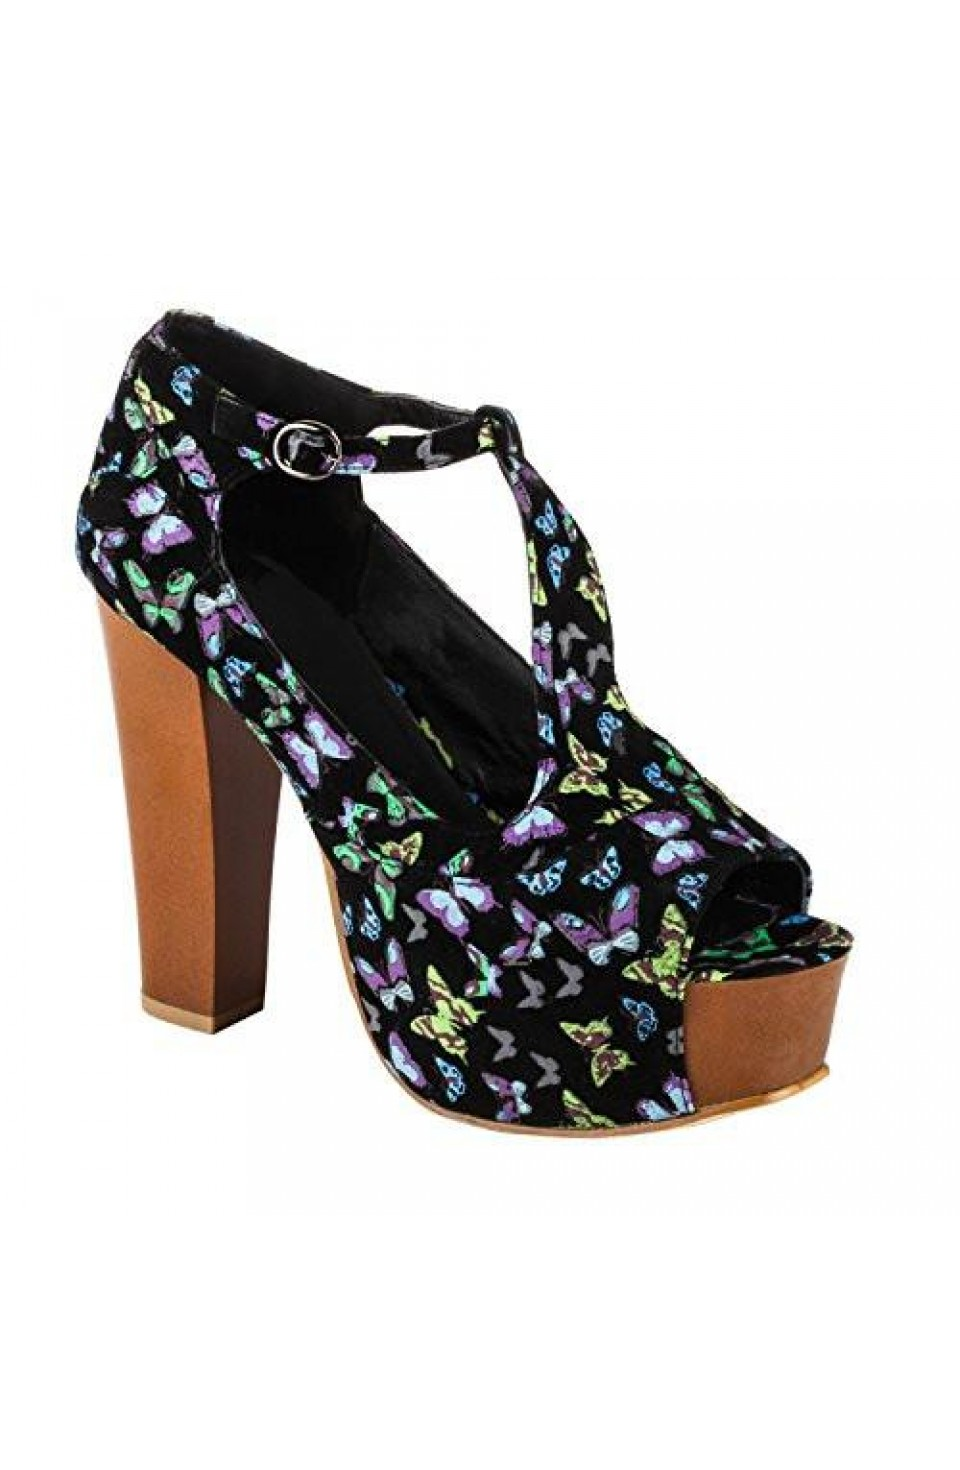 """Women's Black Butterfly Kaillee Manmade Chunky 5"""" Heel Platform Sandals with Trendy Print"""